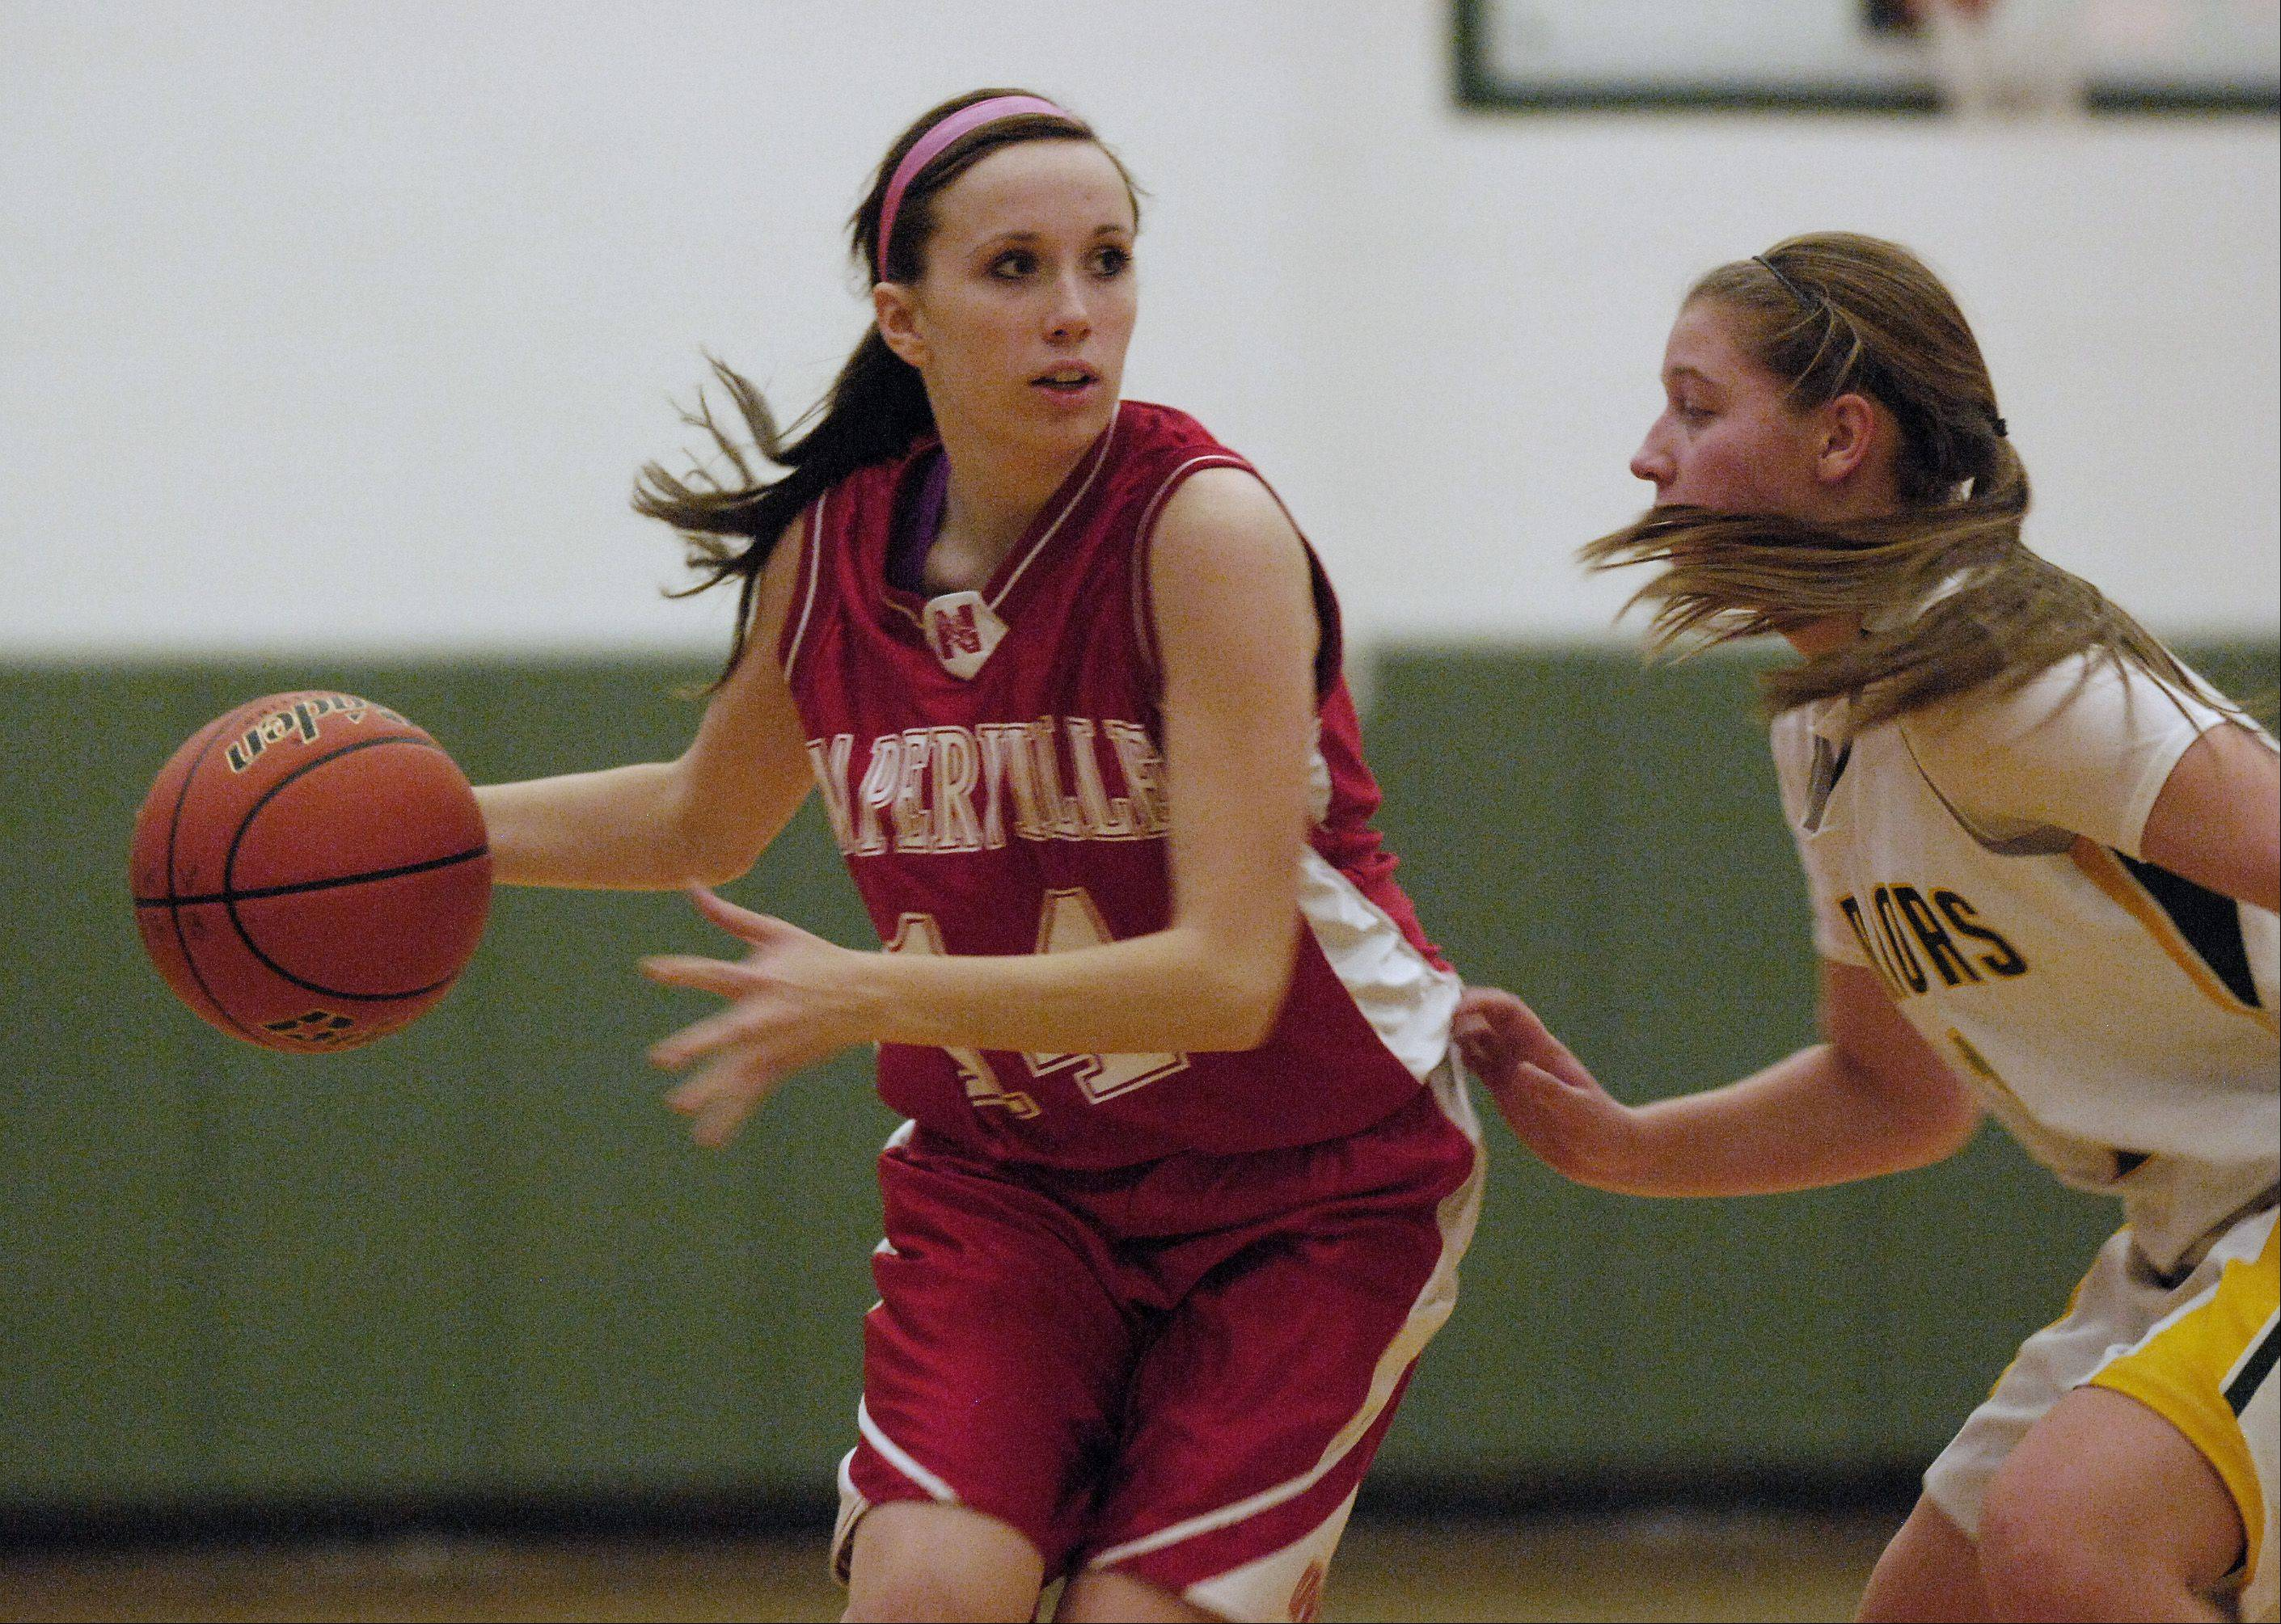 Images: Naperville Central vs. Waubonsie Valley, girls basketball